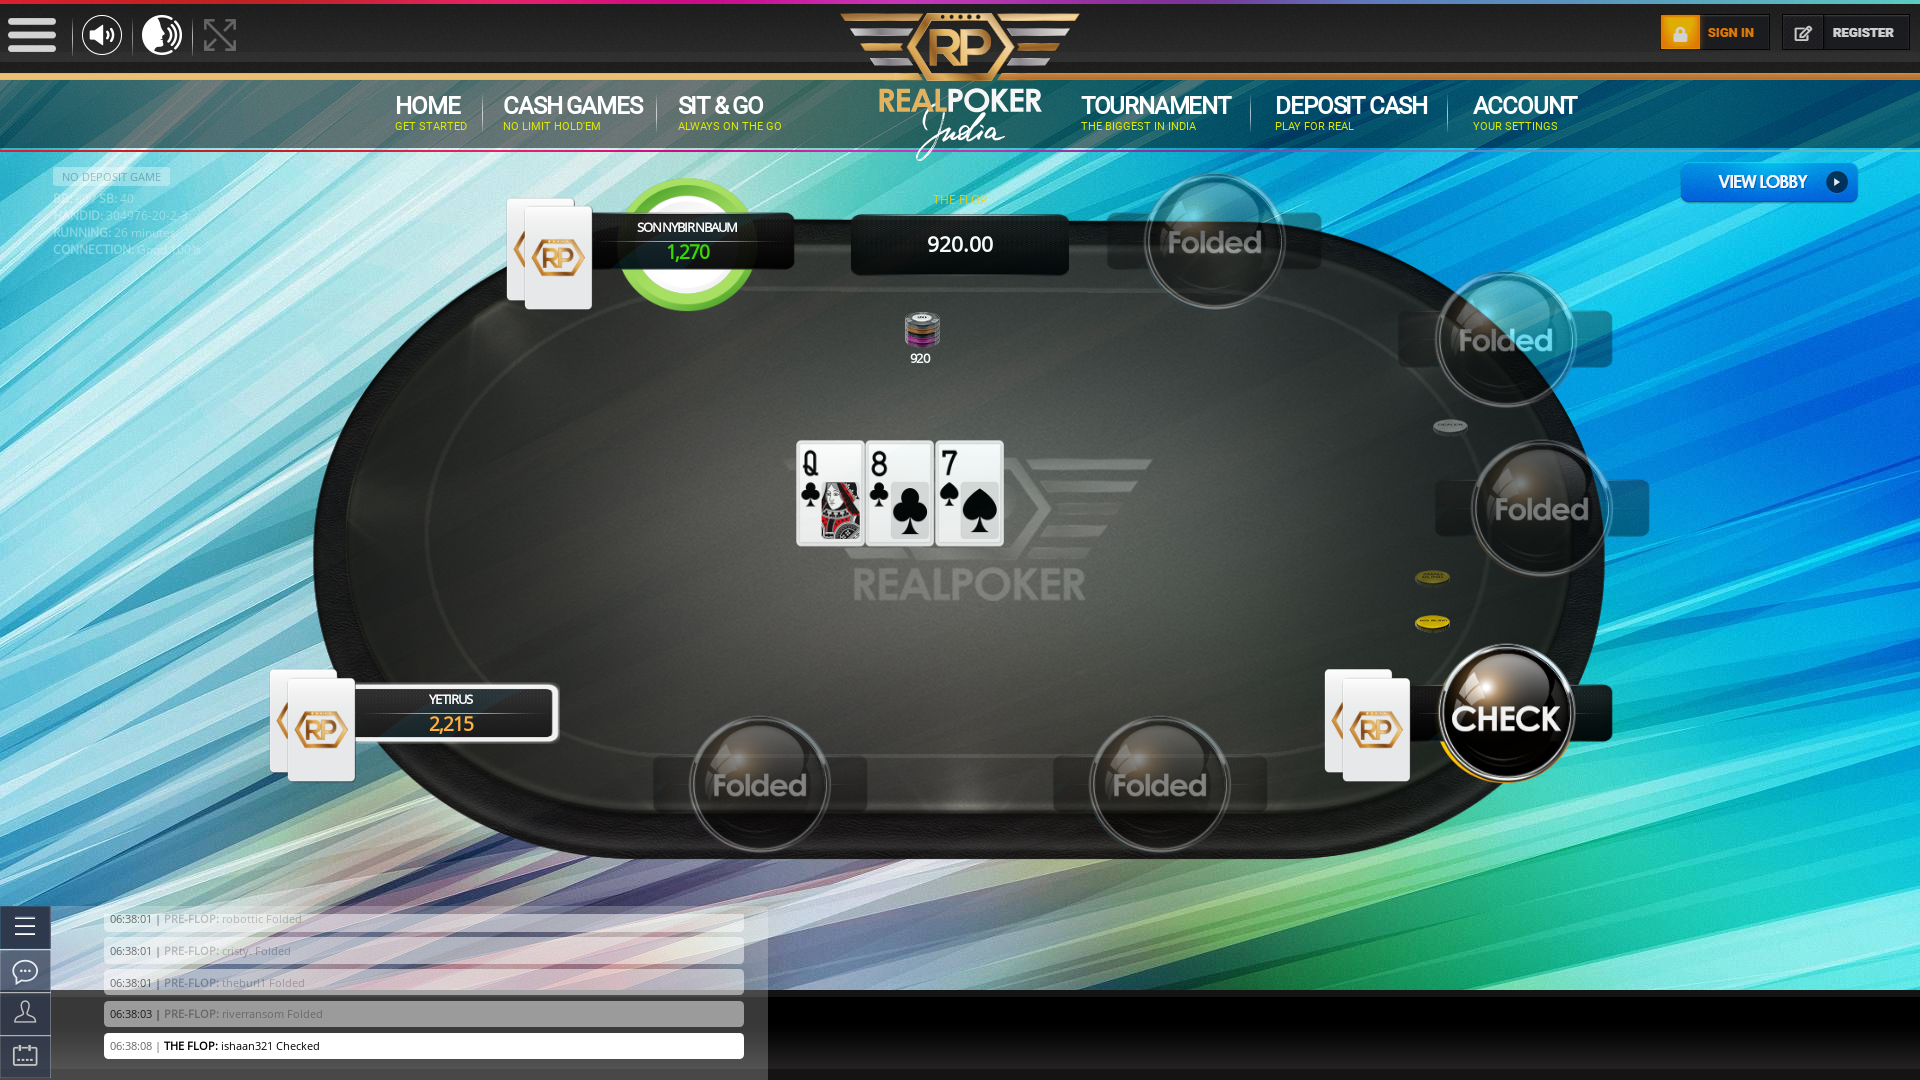 Indian online poker on a 10 player table in the 26th minute match up